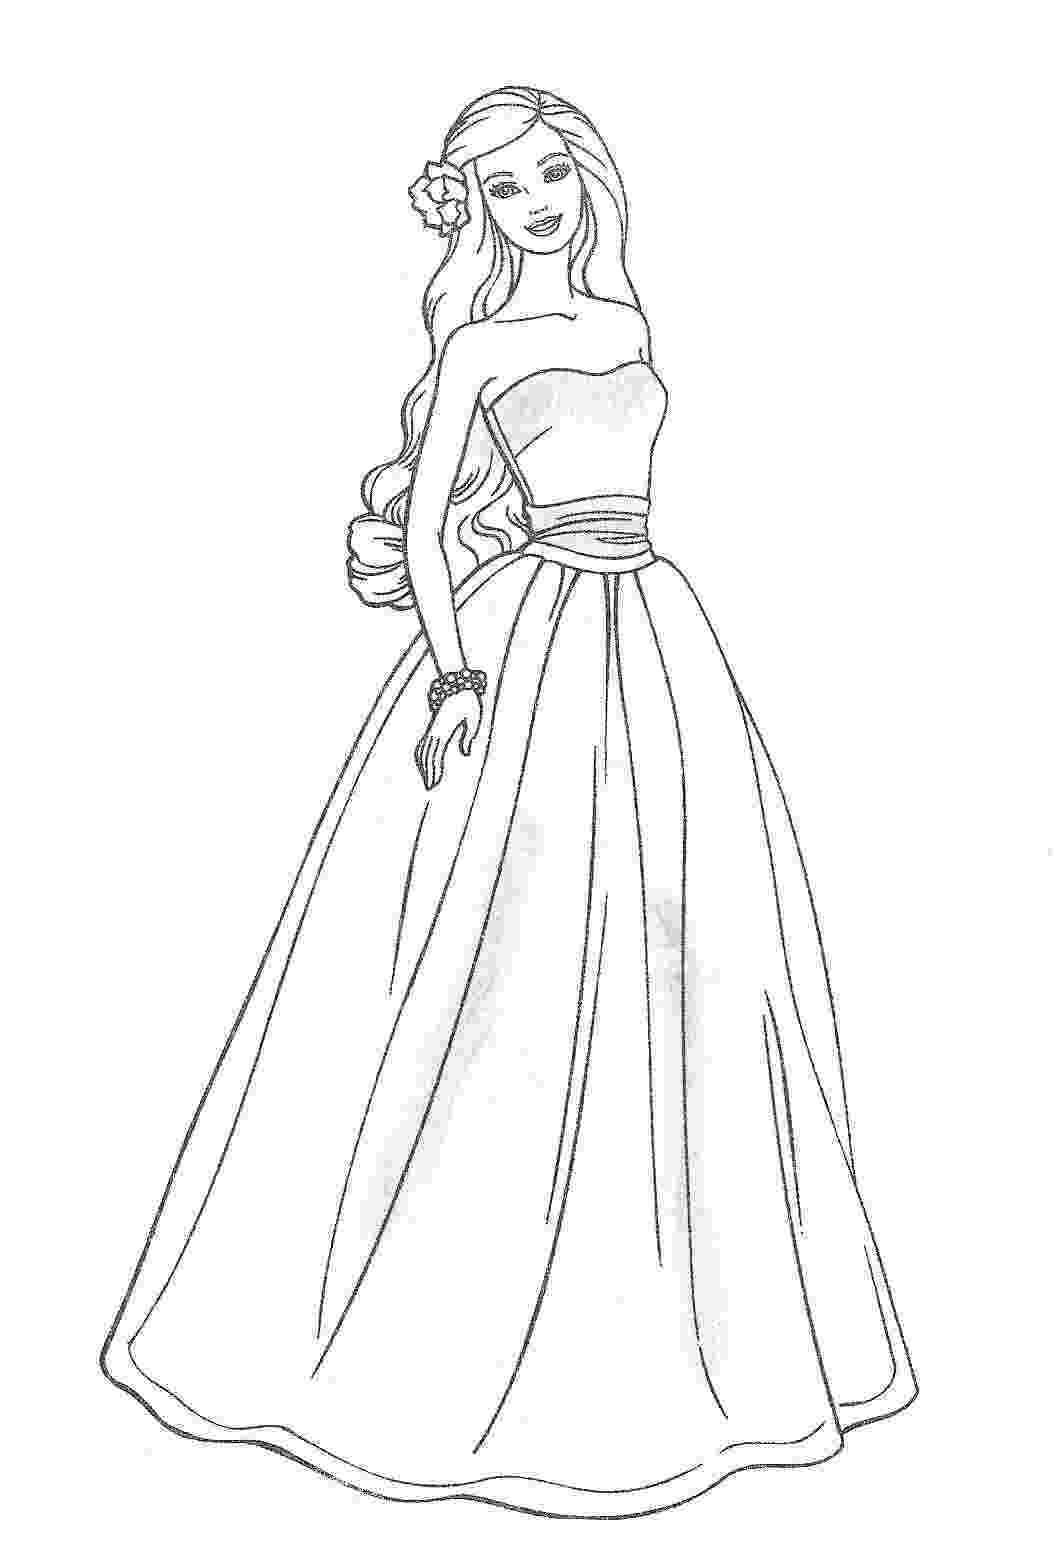 barbie colouring coloring pages barbie free printable coloring pages colouring barbie